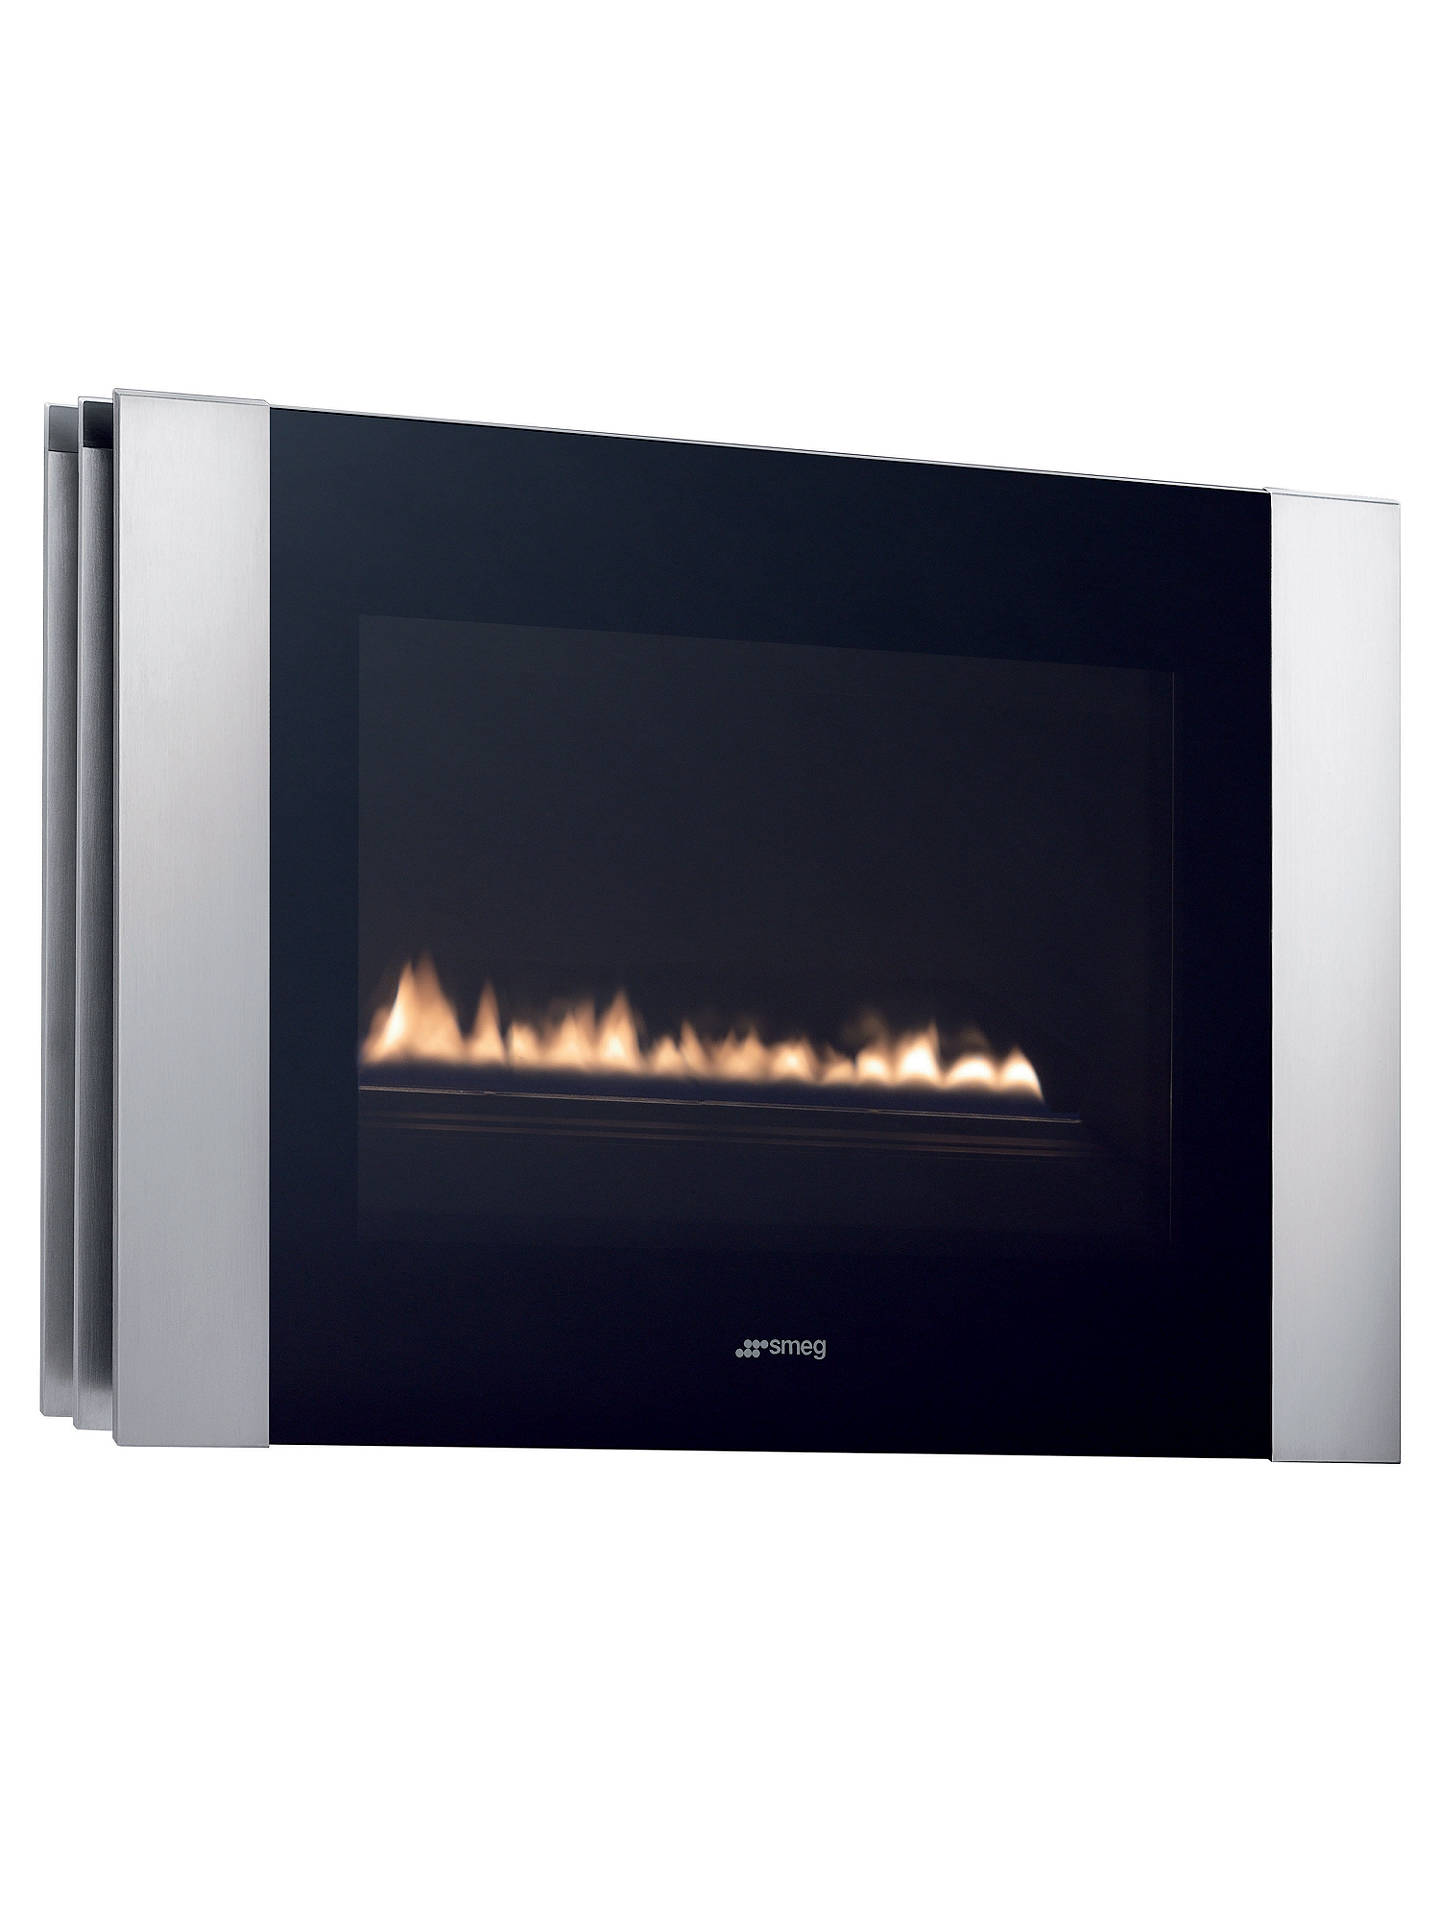 Wall Mounted Natural Gas Fireplace Luxury Smeg L23lin Flueless Gas Fire Stainless Steel